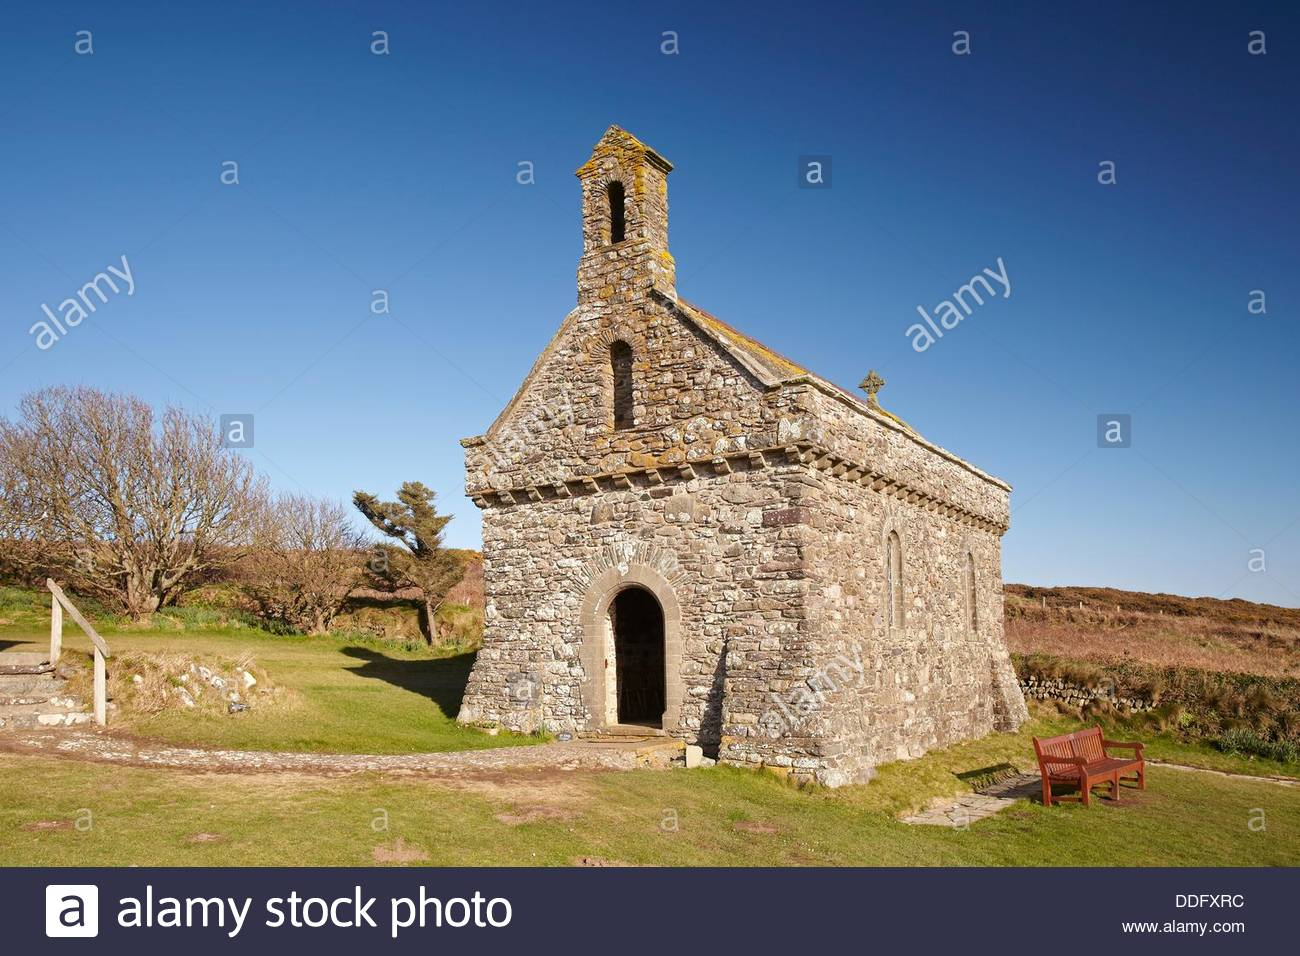 Chapel of Our Lady and St Non, near St Davids, Pembrokeshire, Wales, UK. - Stock Image